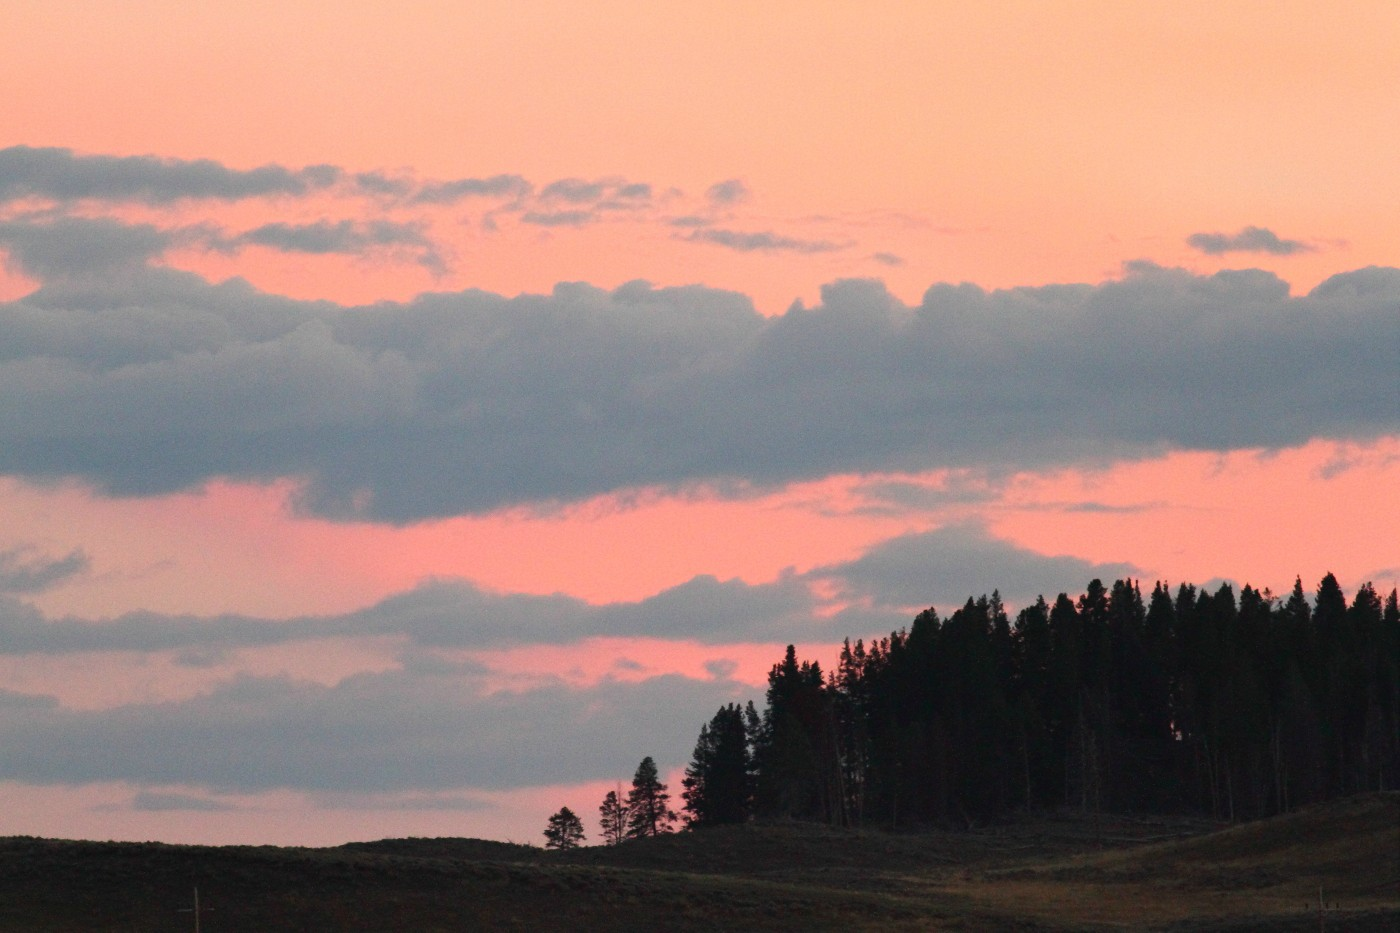 sunset hayden valley yellowstone national park szulecki joshua